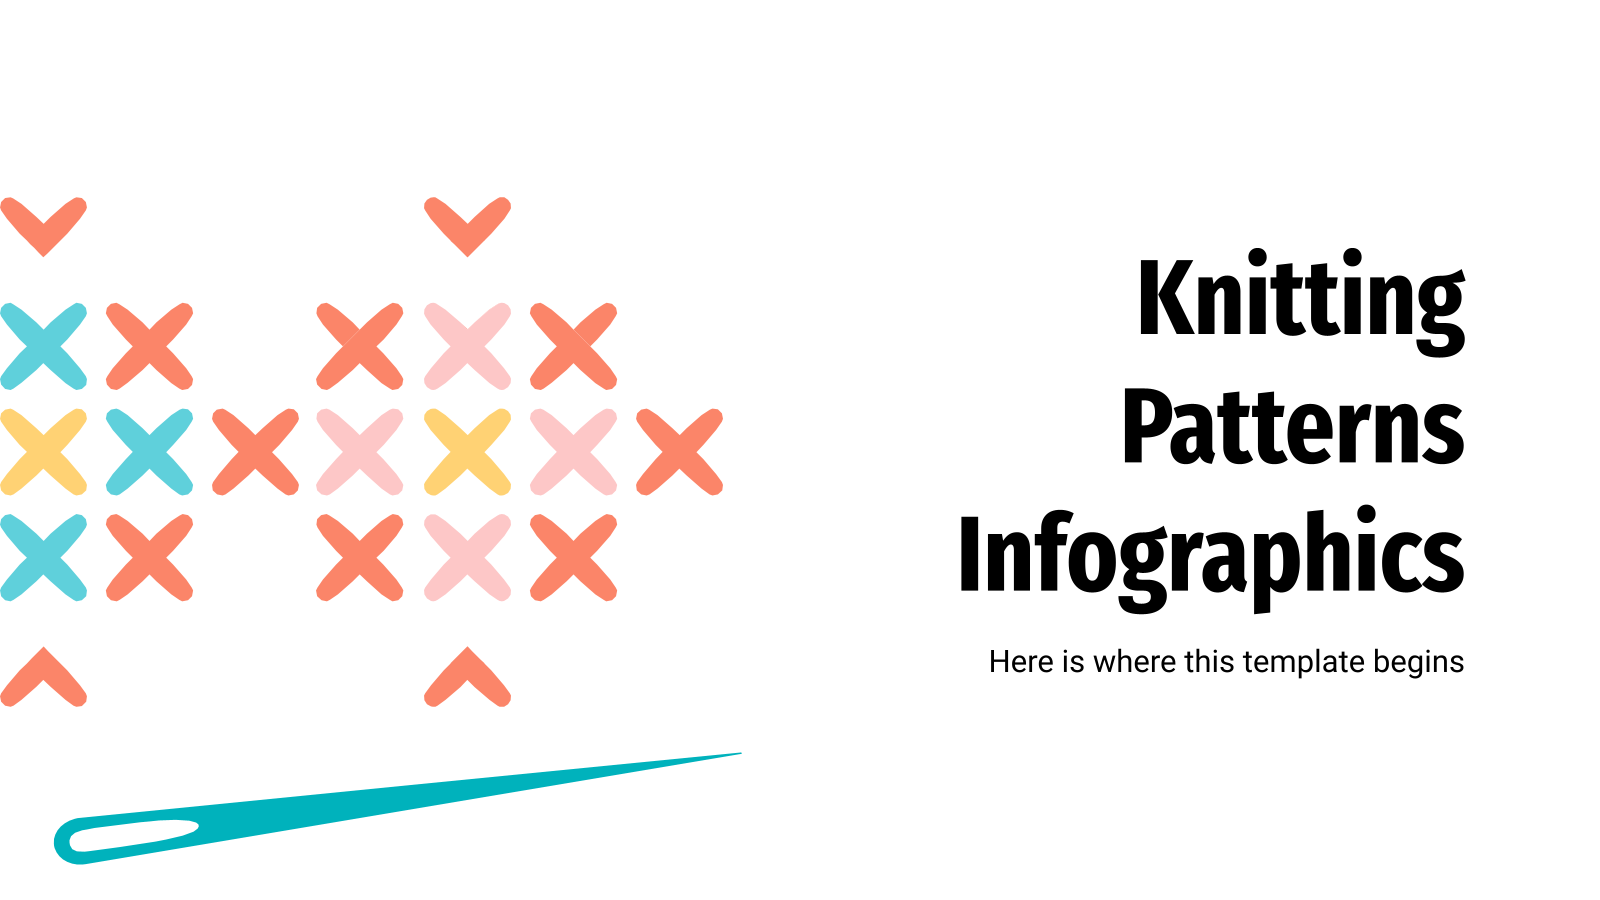 Knitting Patterns Infographics presentation template